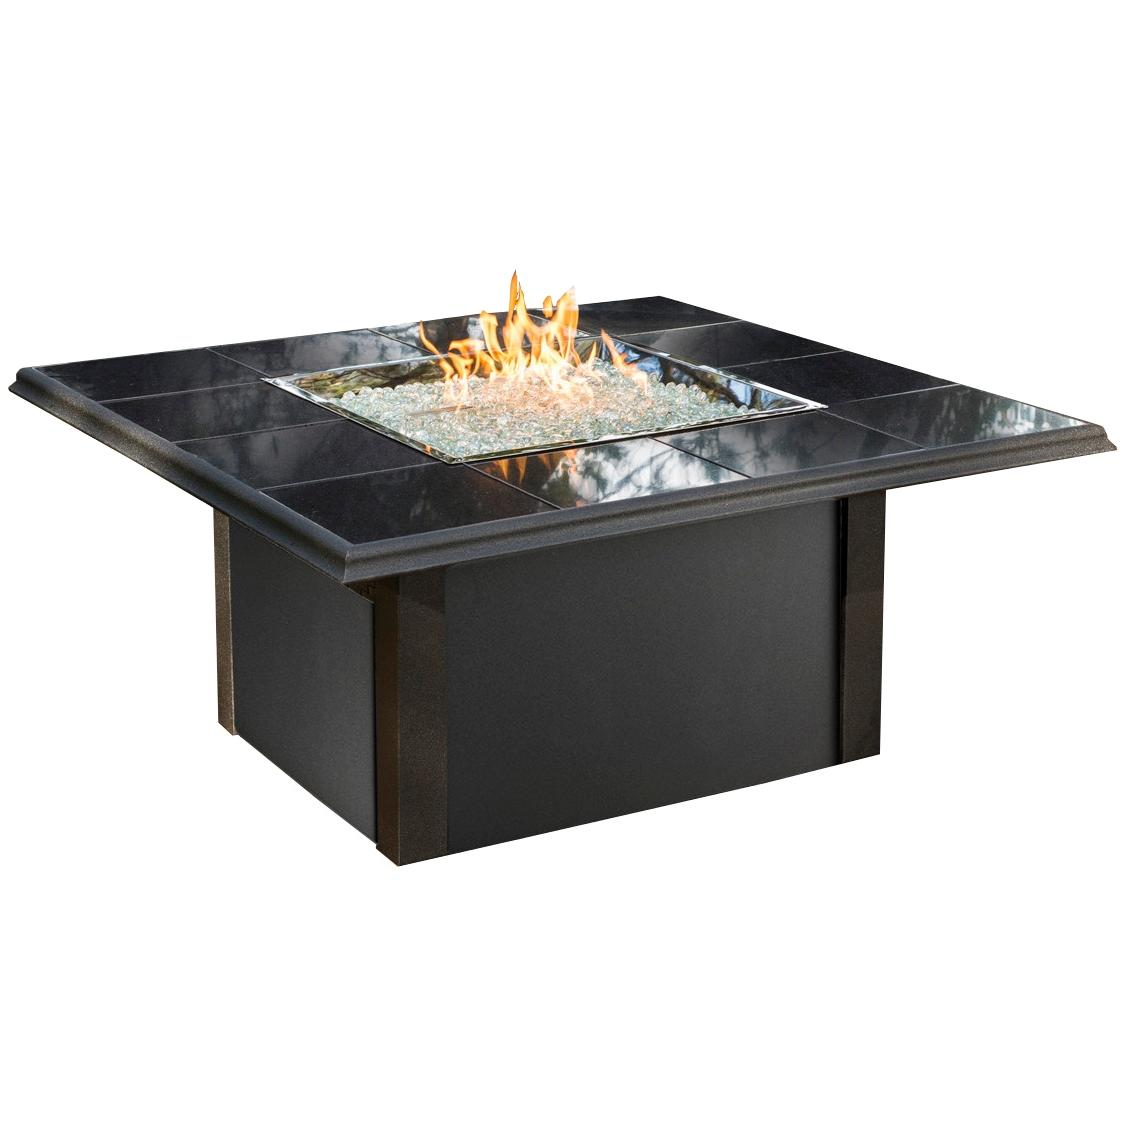 Portable Patio Fire Pit :  pit table black outdoor greatroom company napa valley propane fire pit